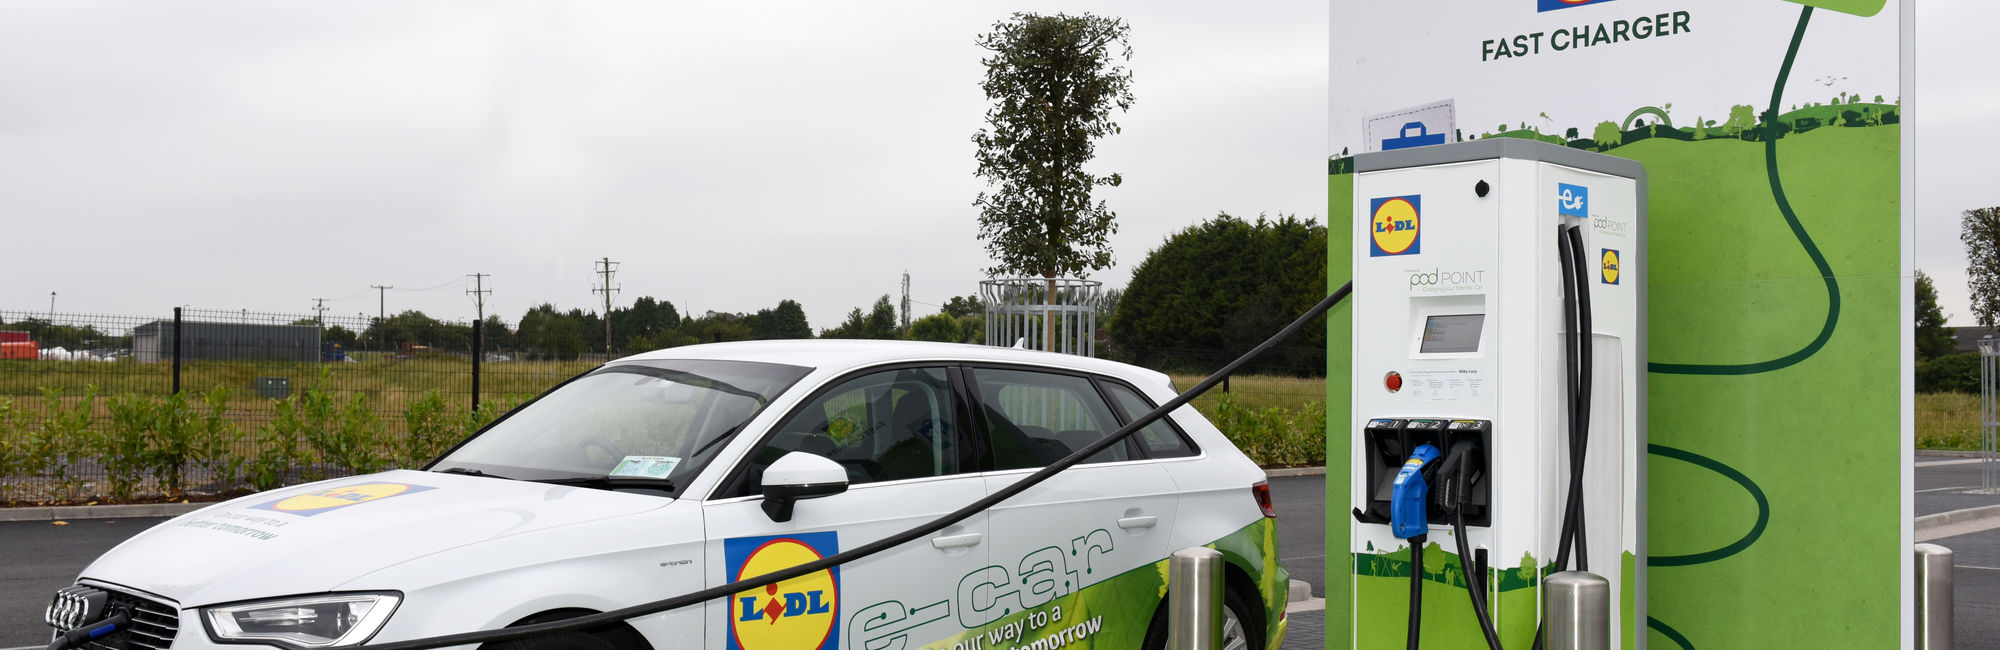 Lidl Ireland commits to the largest network of electric vehicle charging